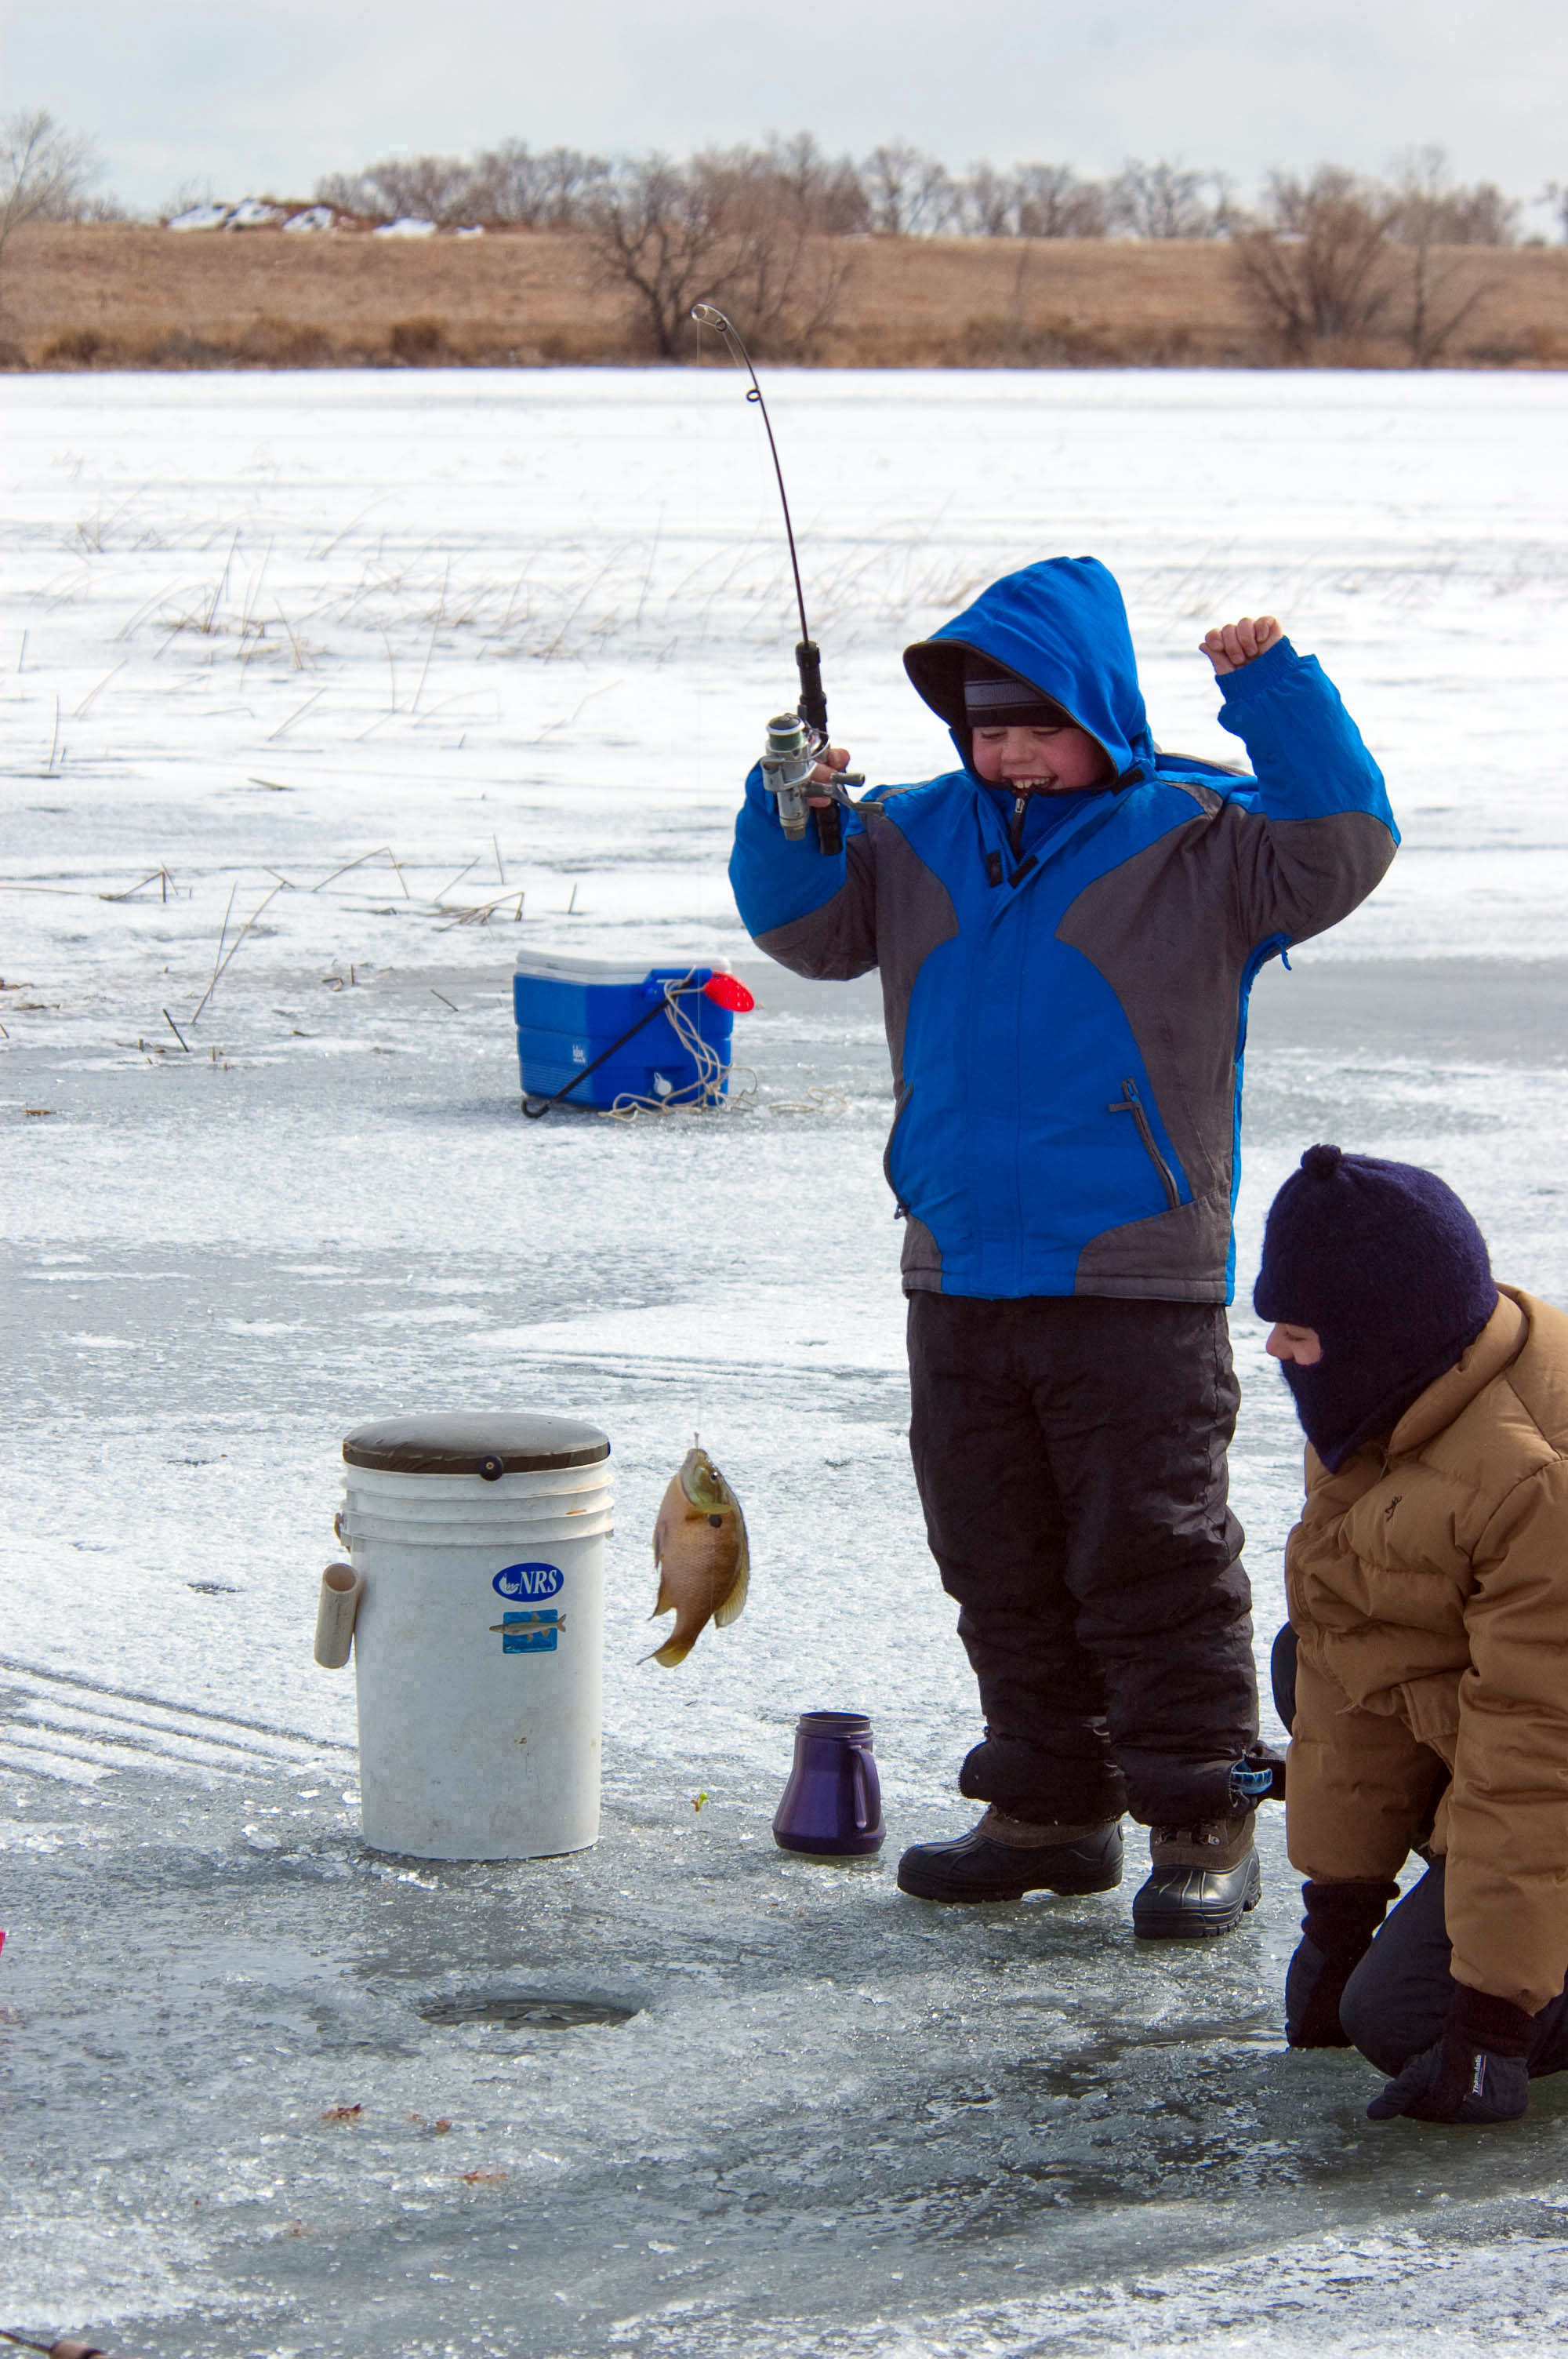 Find right depth to catch fish through ice southern utah for How to catch fish in a lake